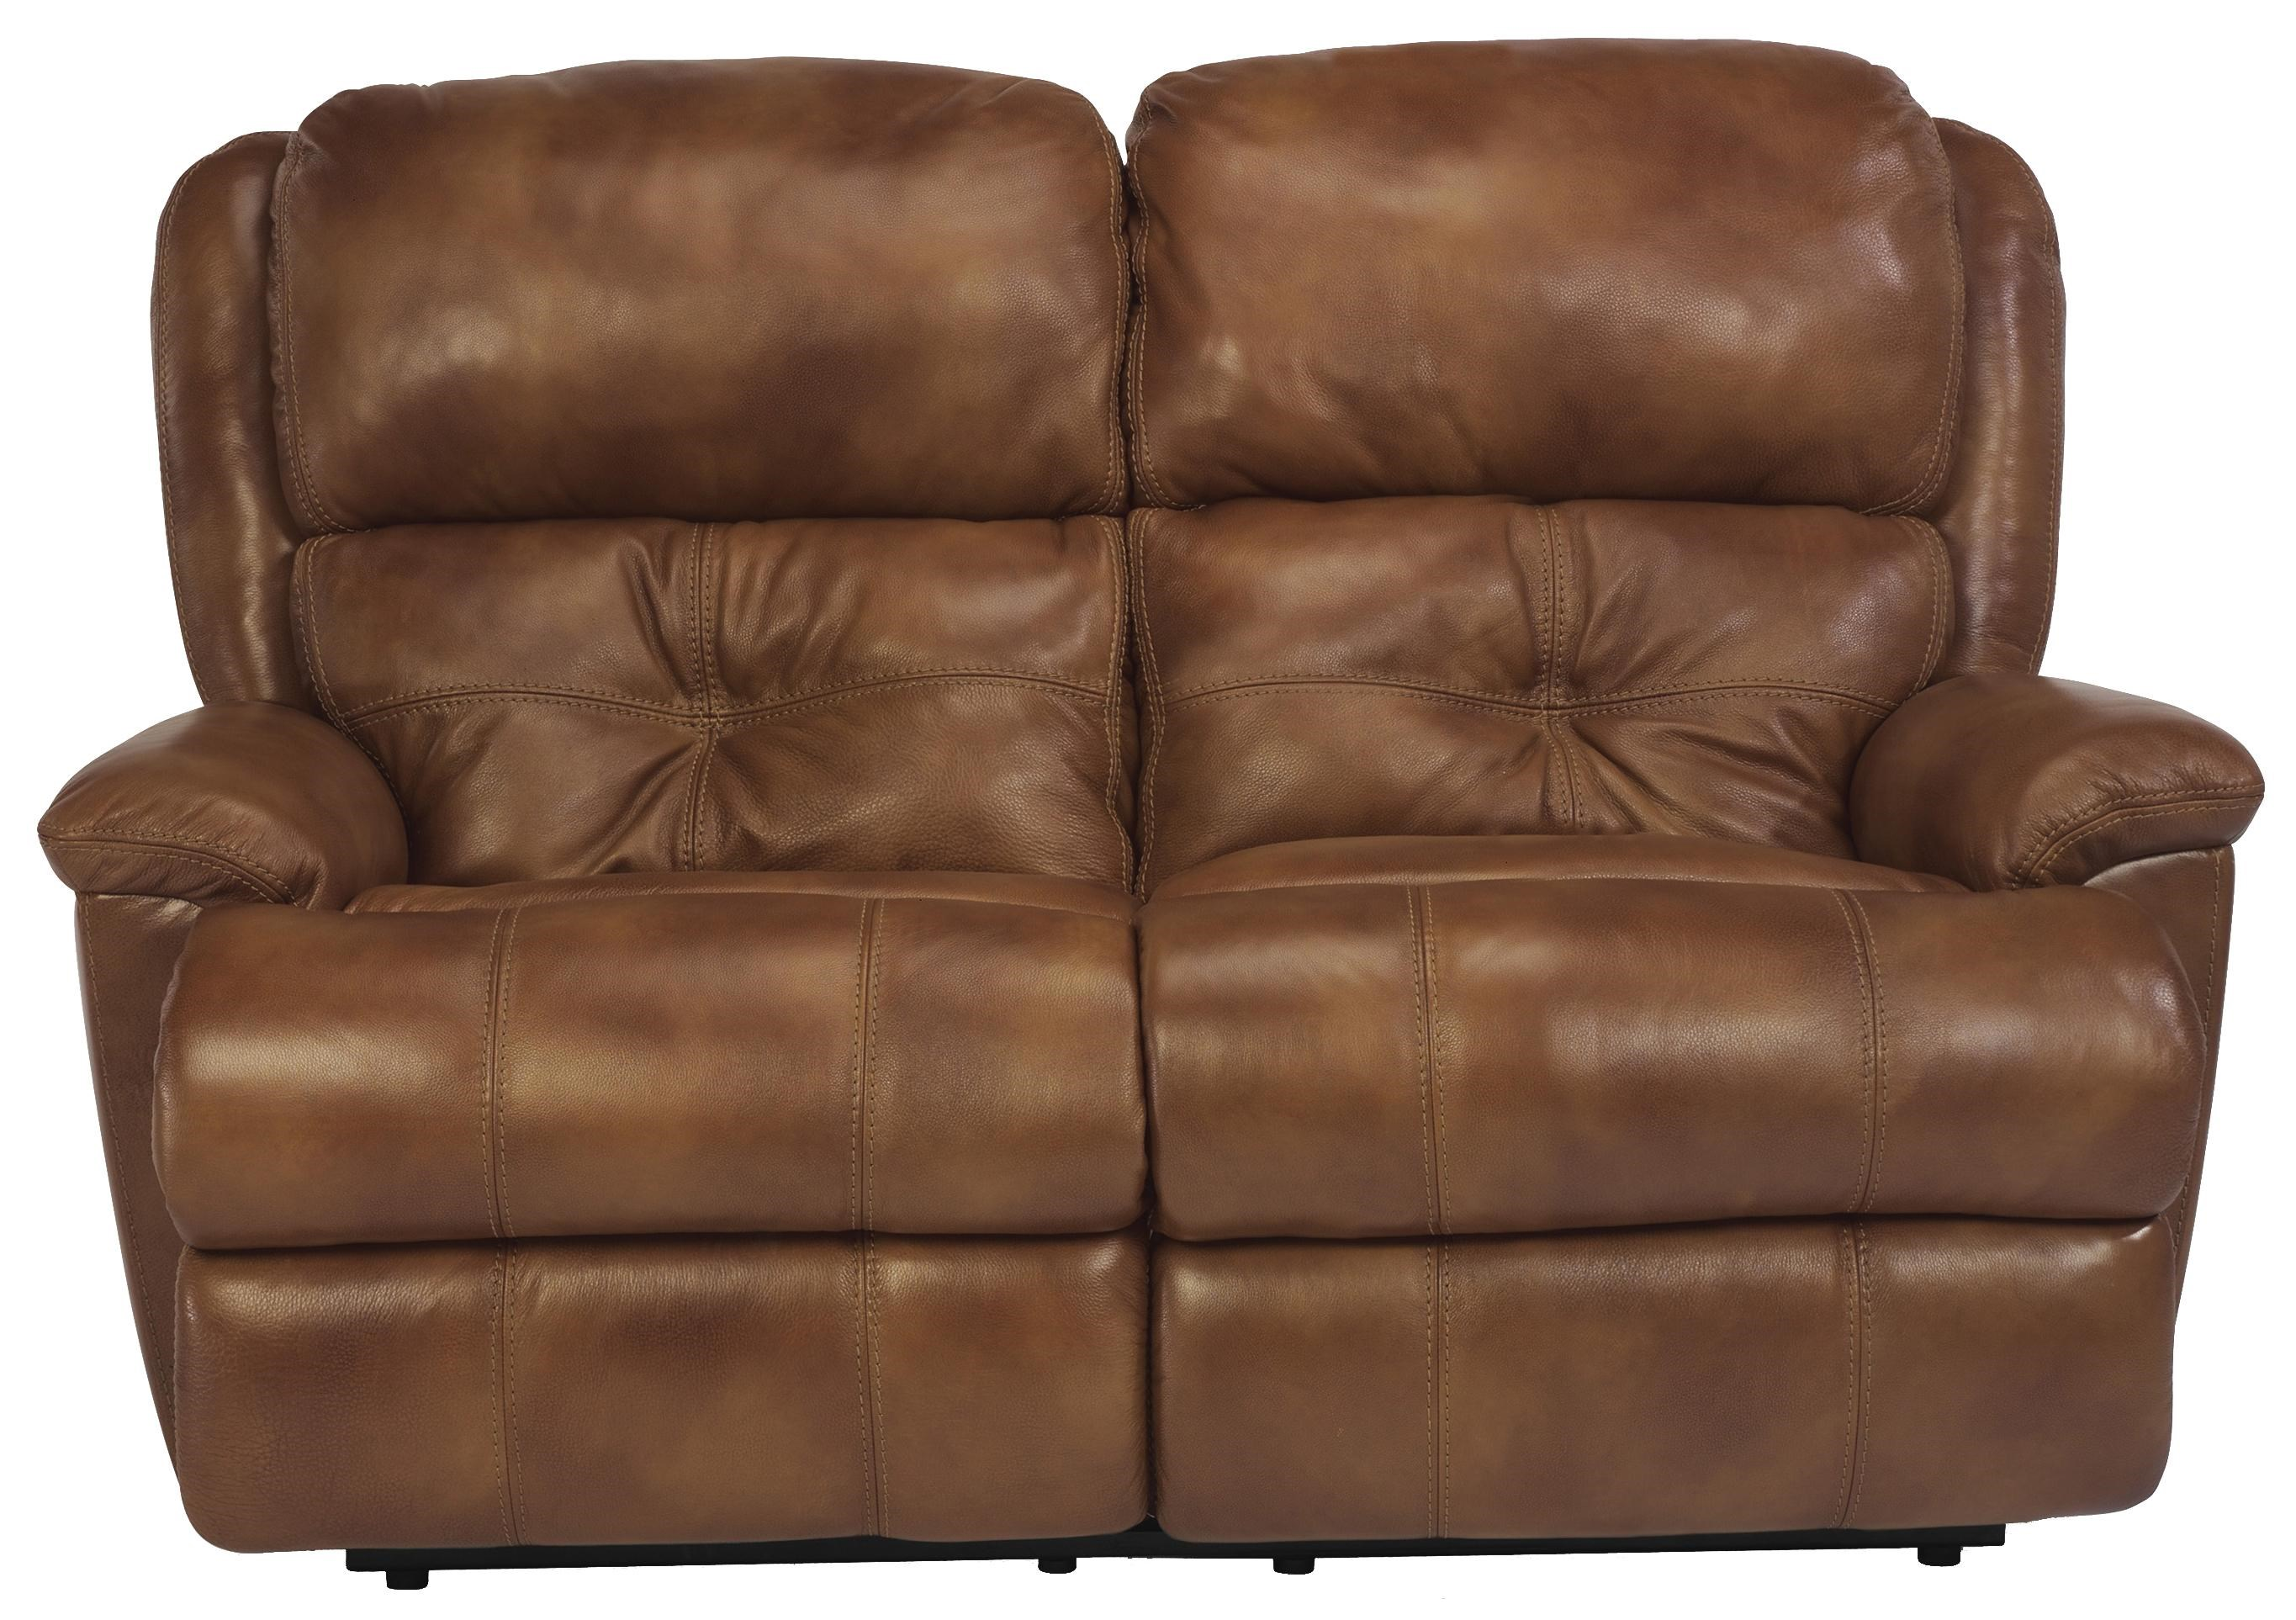 Double Recliner Chair Latitudes Cruise Control Power Reclining Loveseat With Two Recliners For Family Room Comfort By Flexsteel At Olinde S Furniture